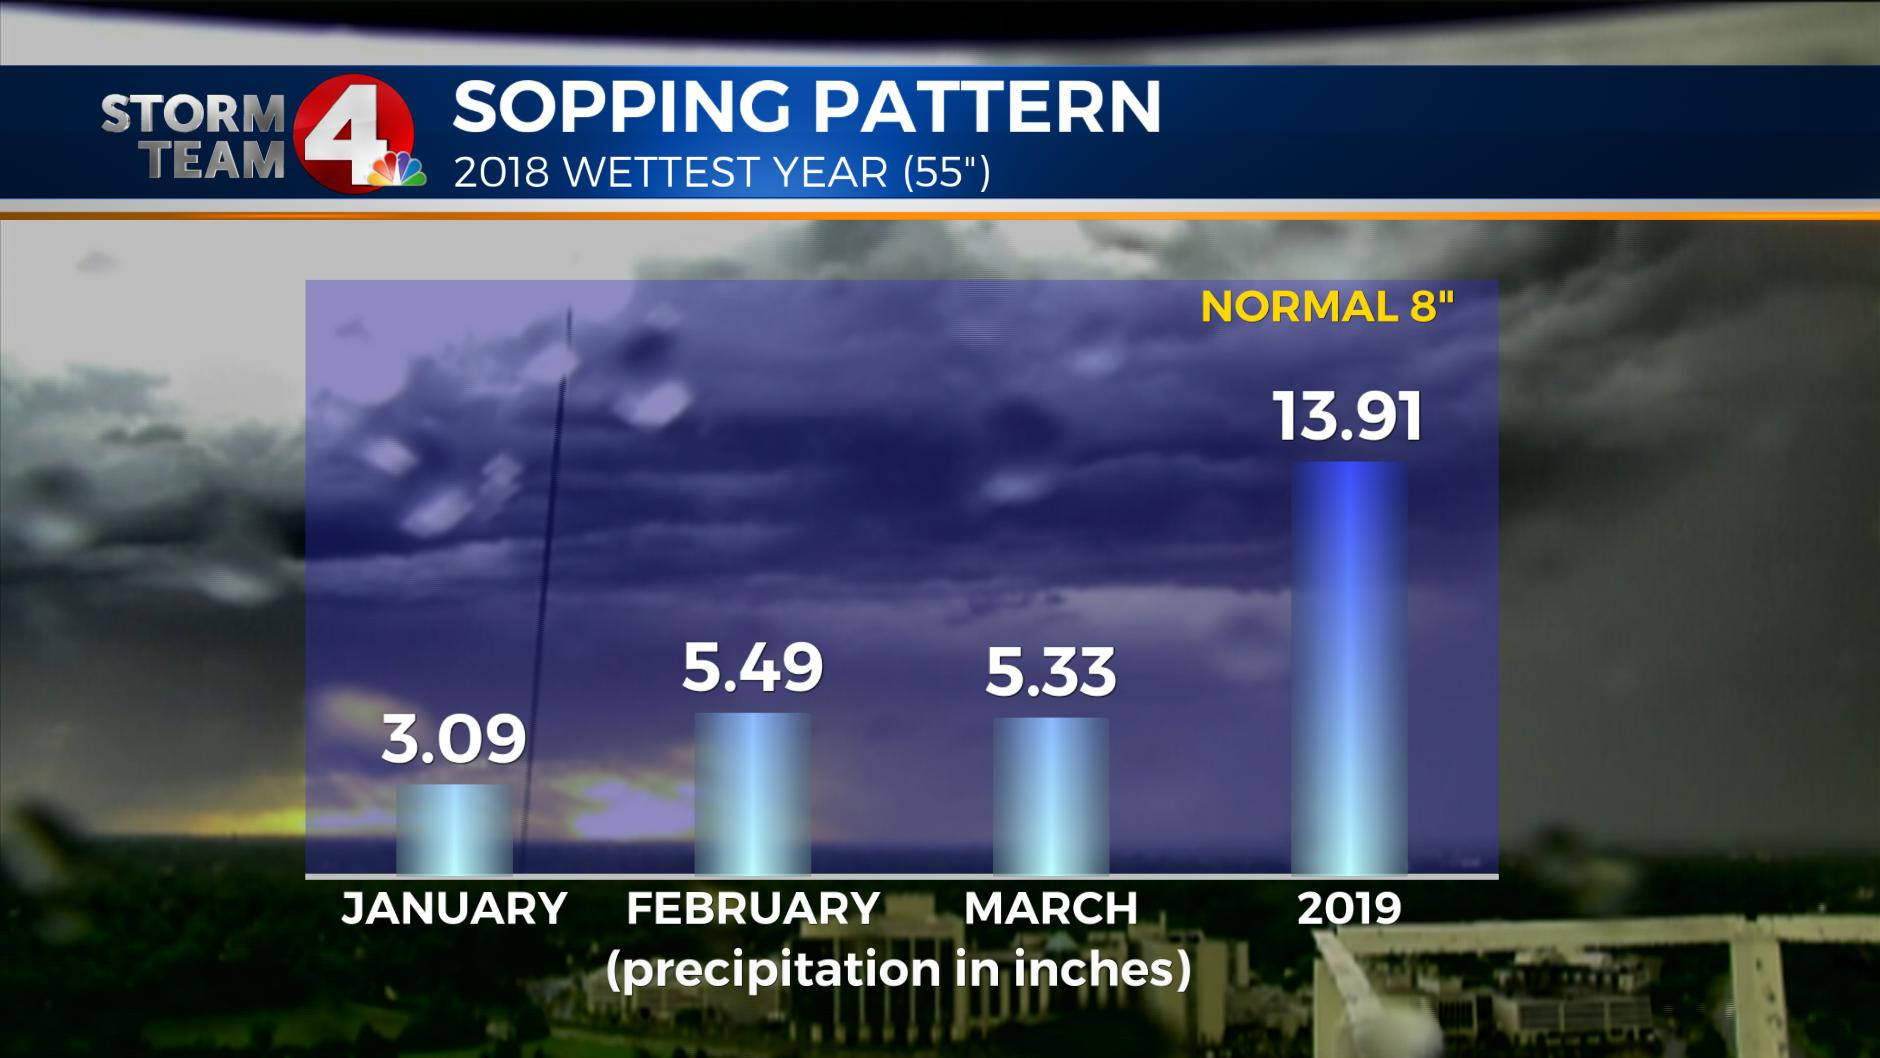 Soggy start to 2019 after record wet year